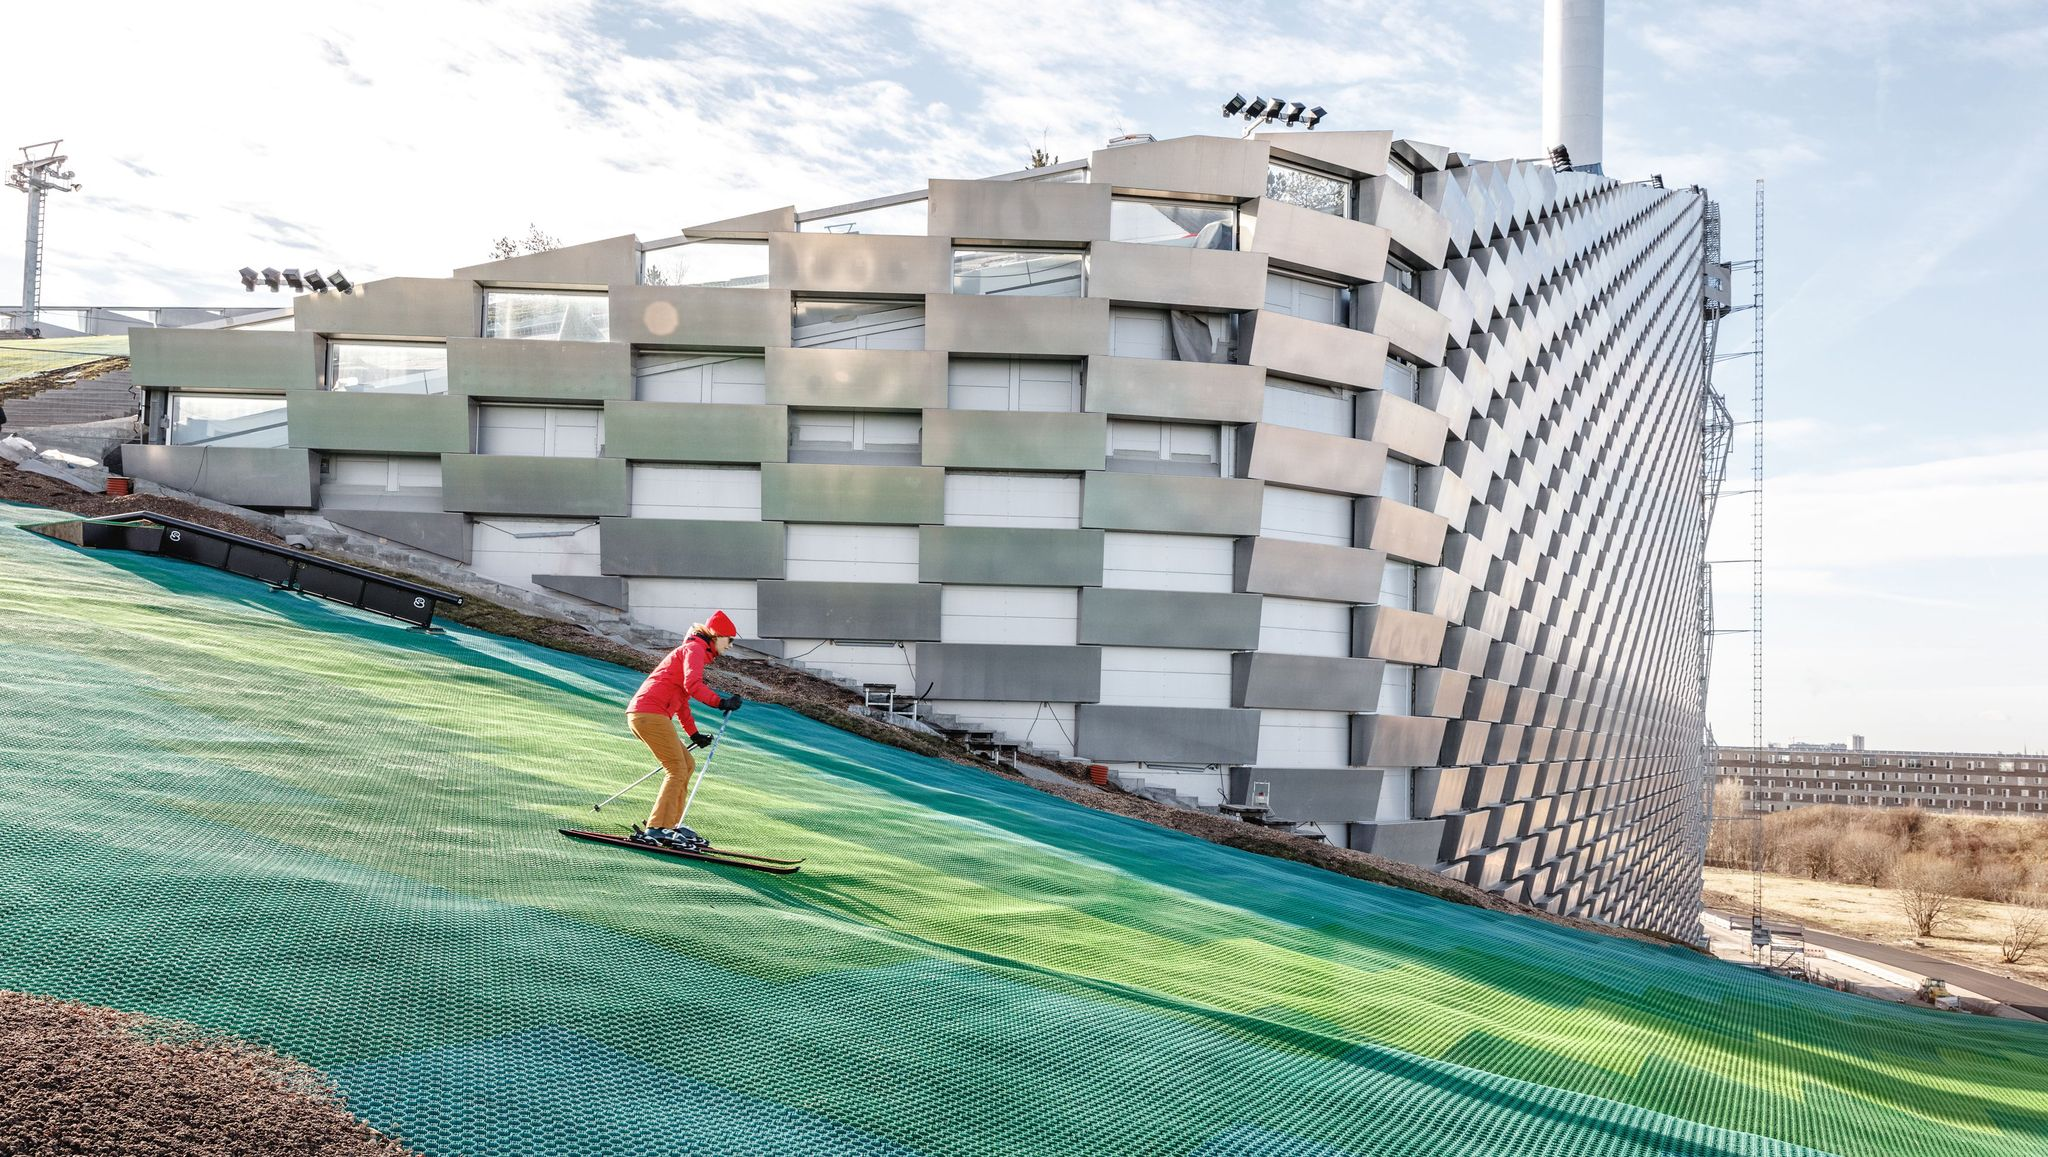 In Copenhagen, Skiers Hit the Slopes On the Most Efficient Incinerator in the World